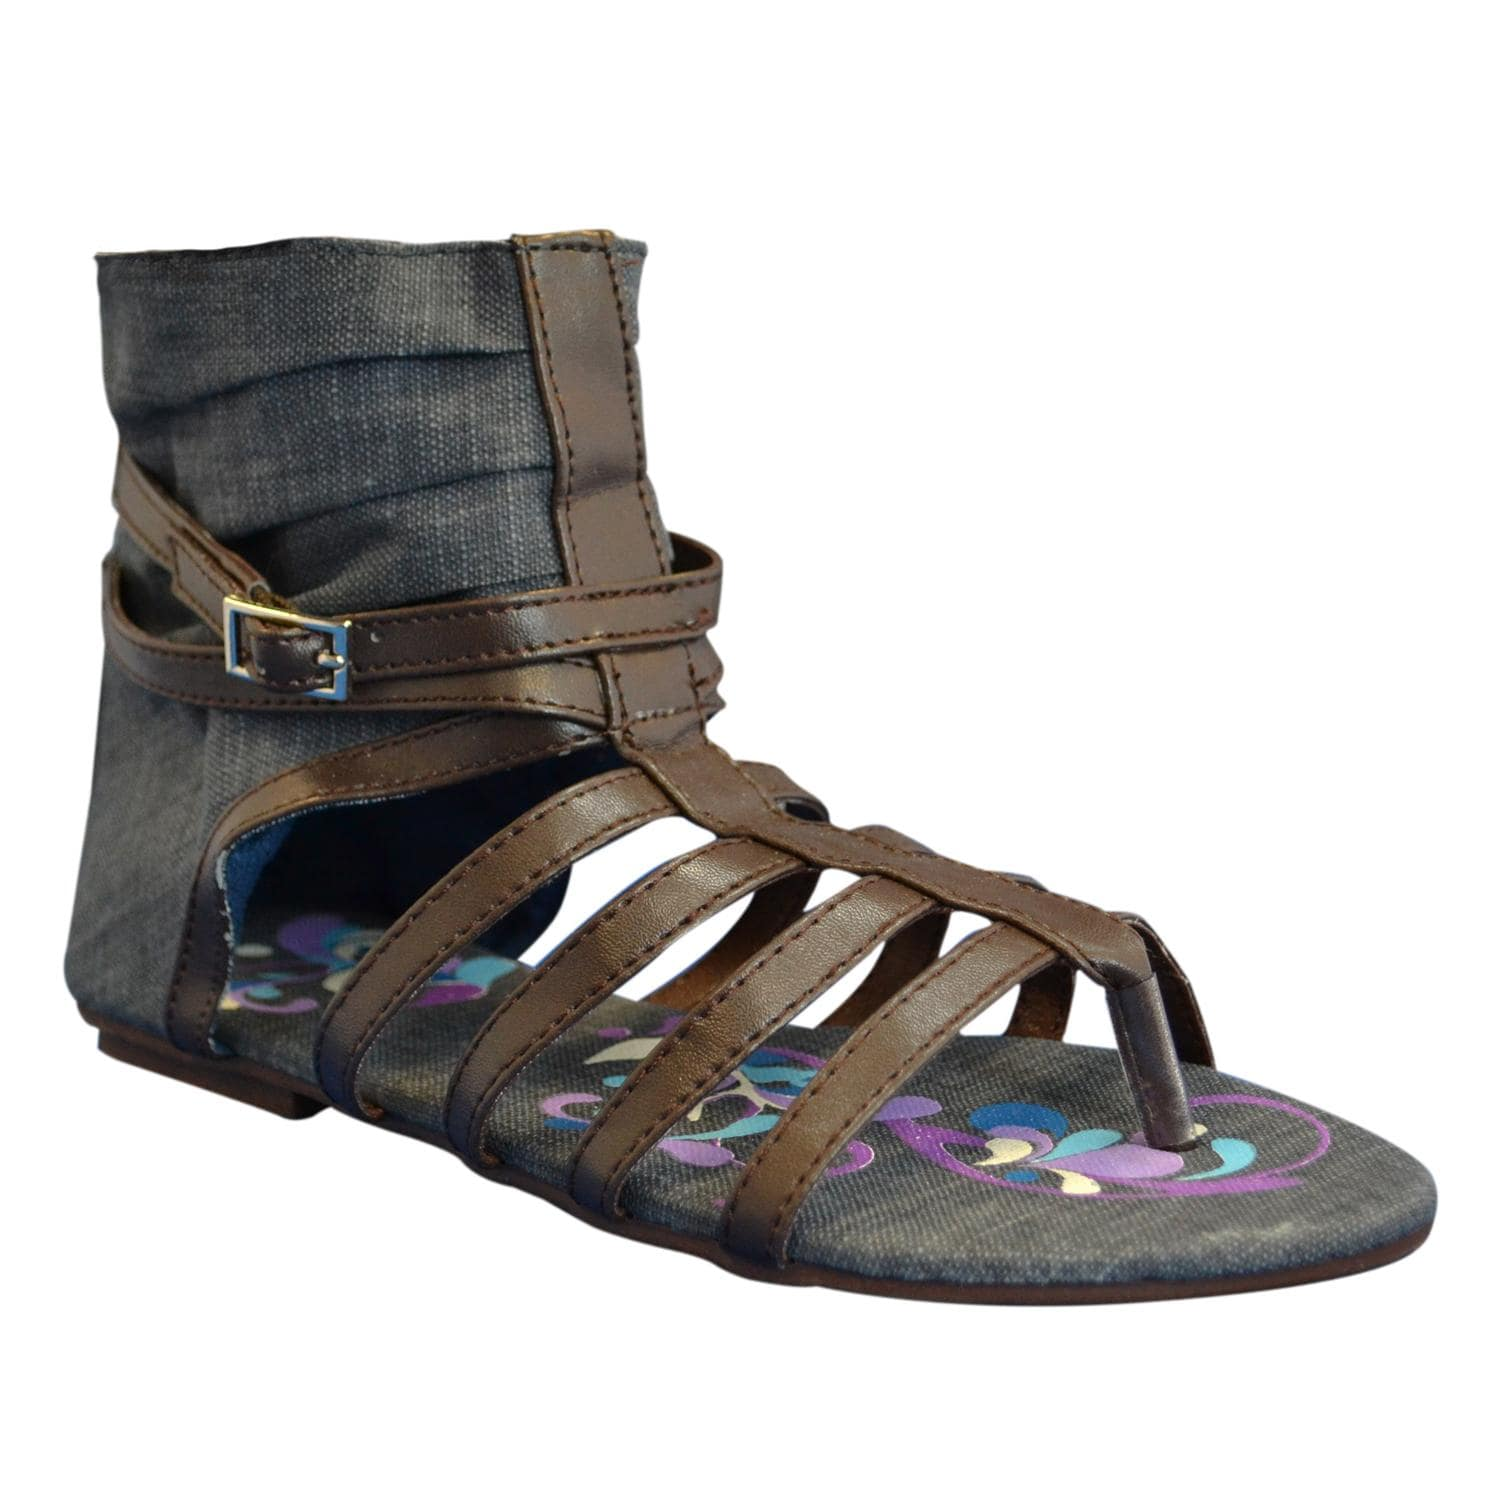 Muk Luks Women's Sun Luk Printed Canvas Scrunched Gladiator Sandals